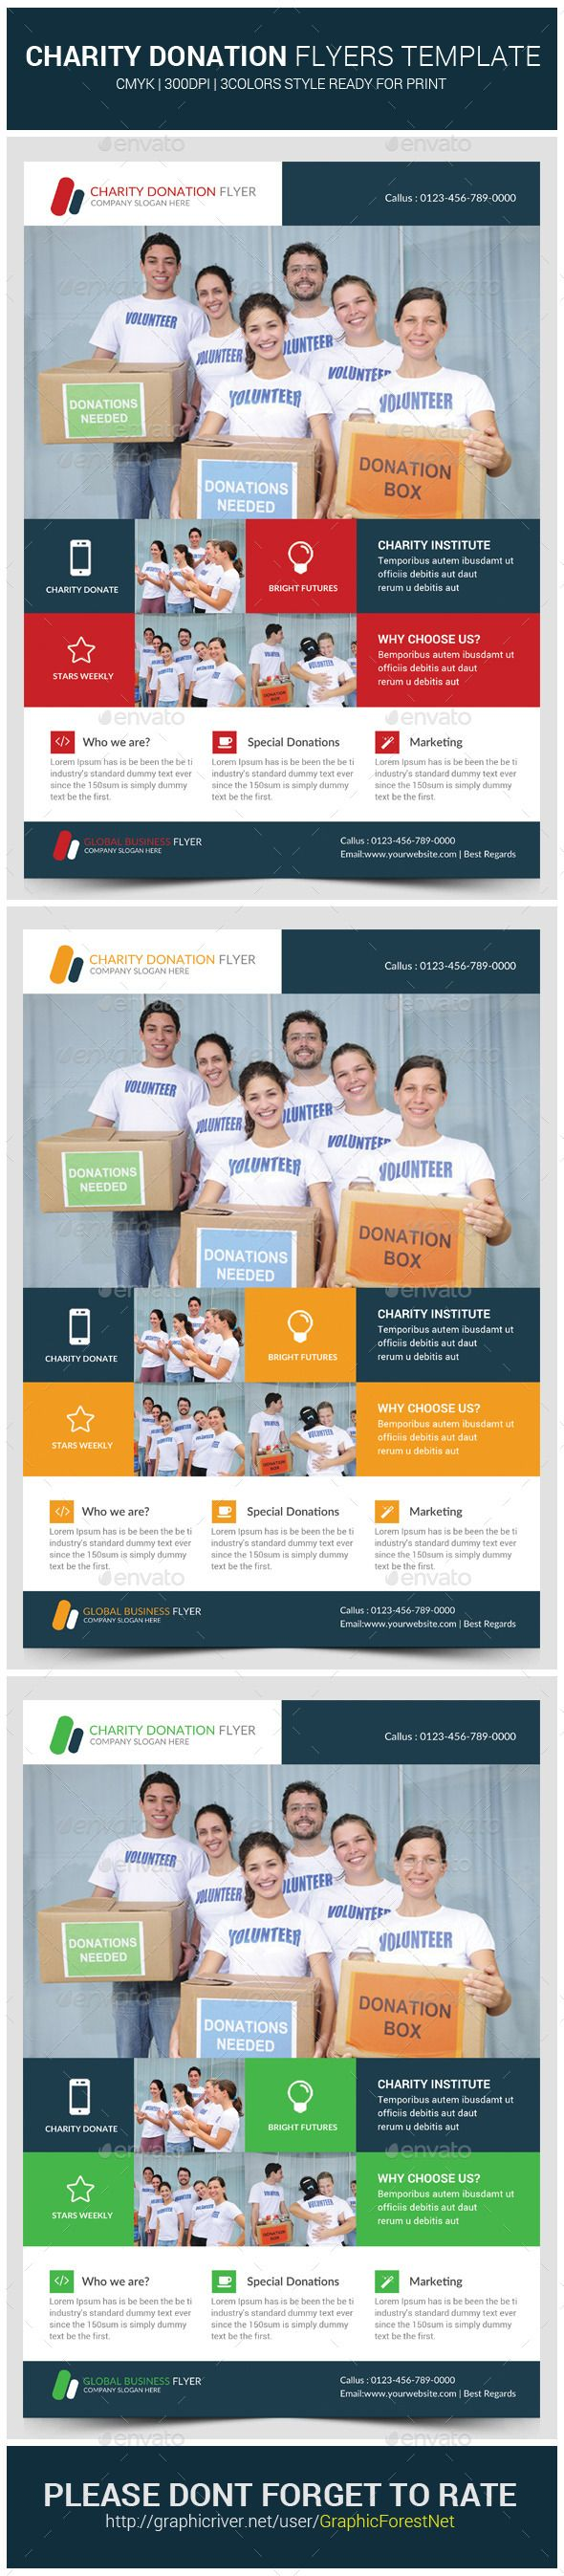 Charity Donation Flyer Template | Flyers, Flyer template and Templates